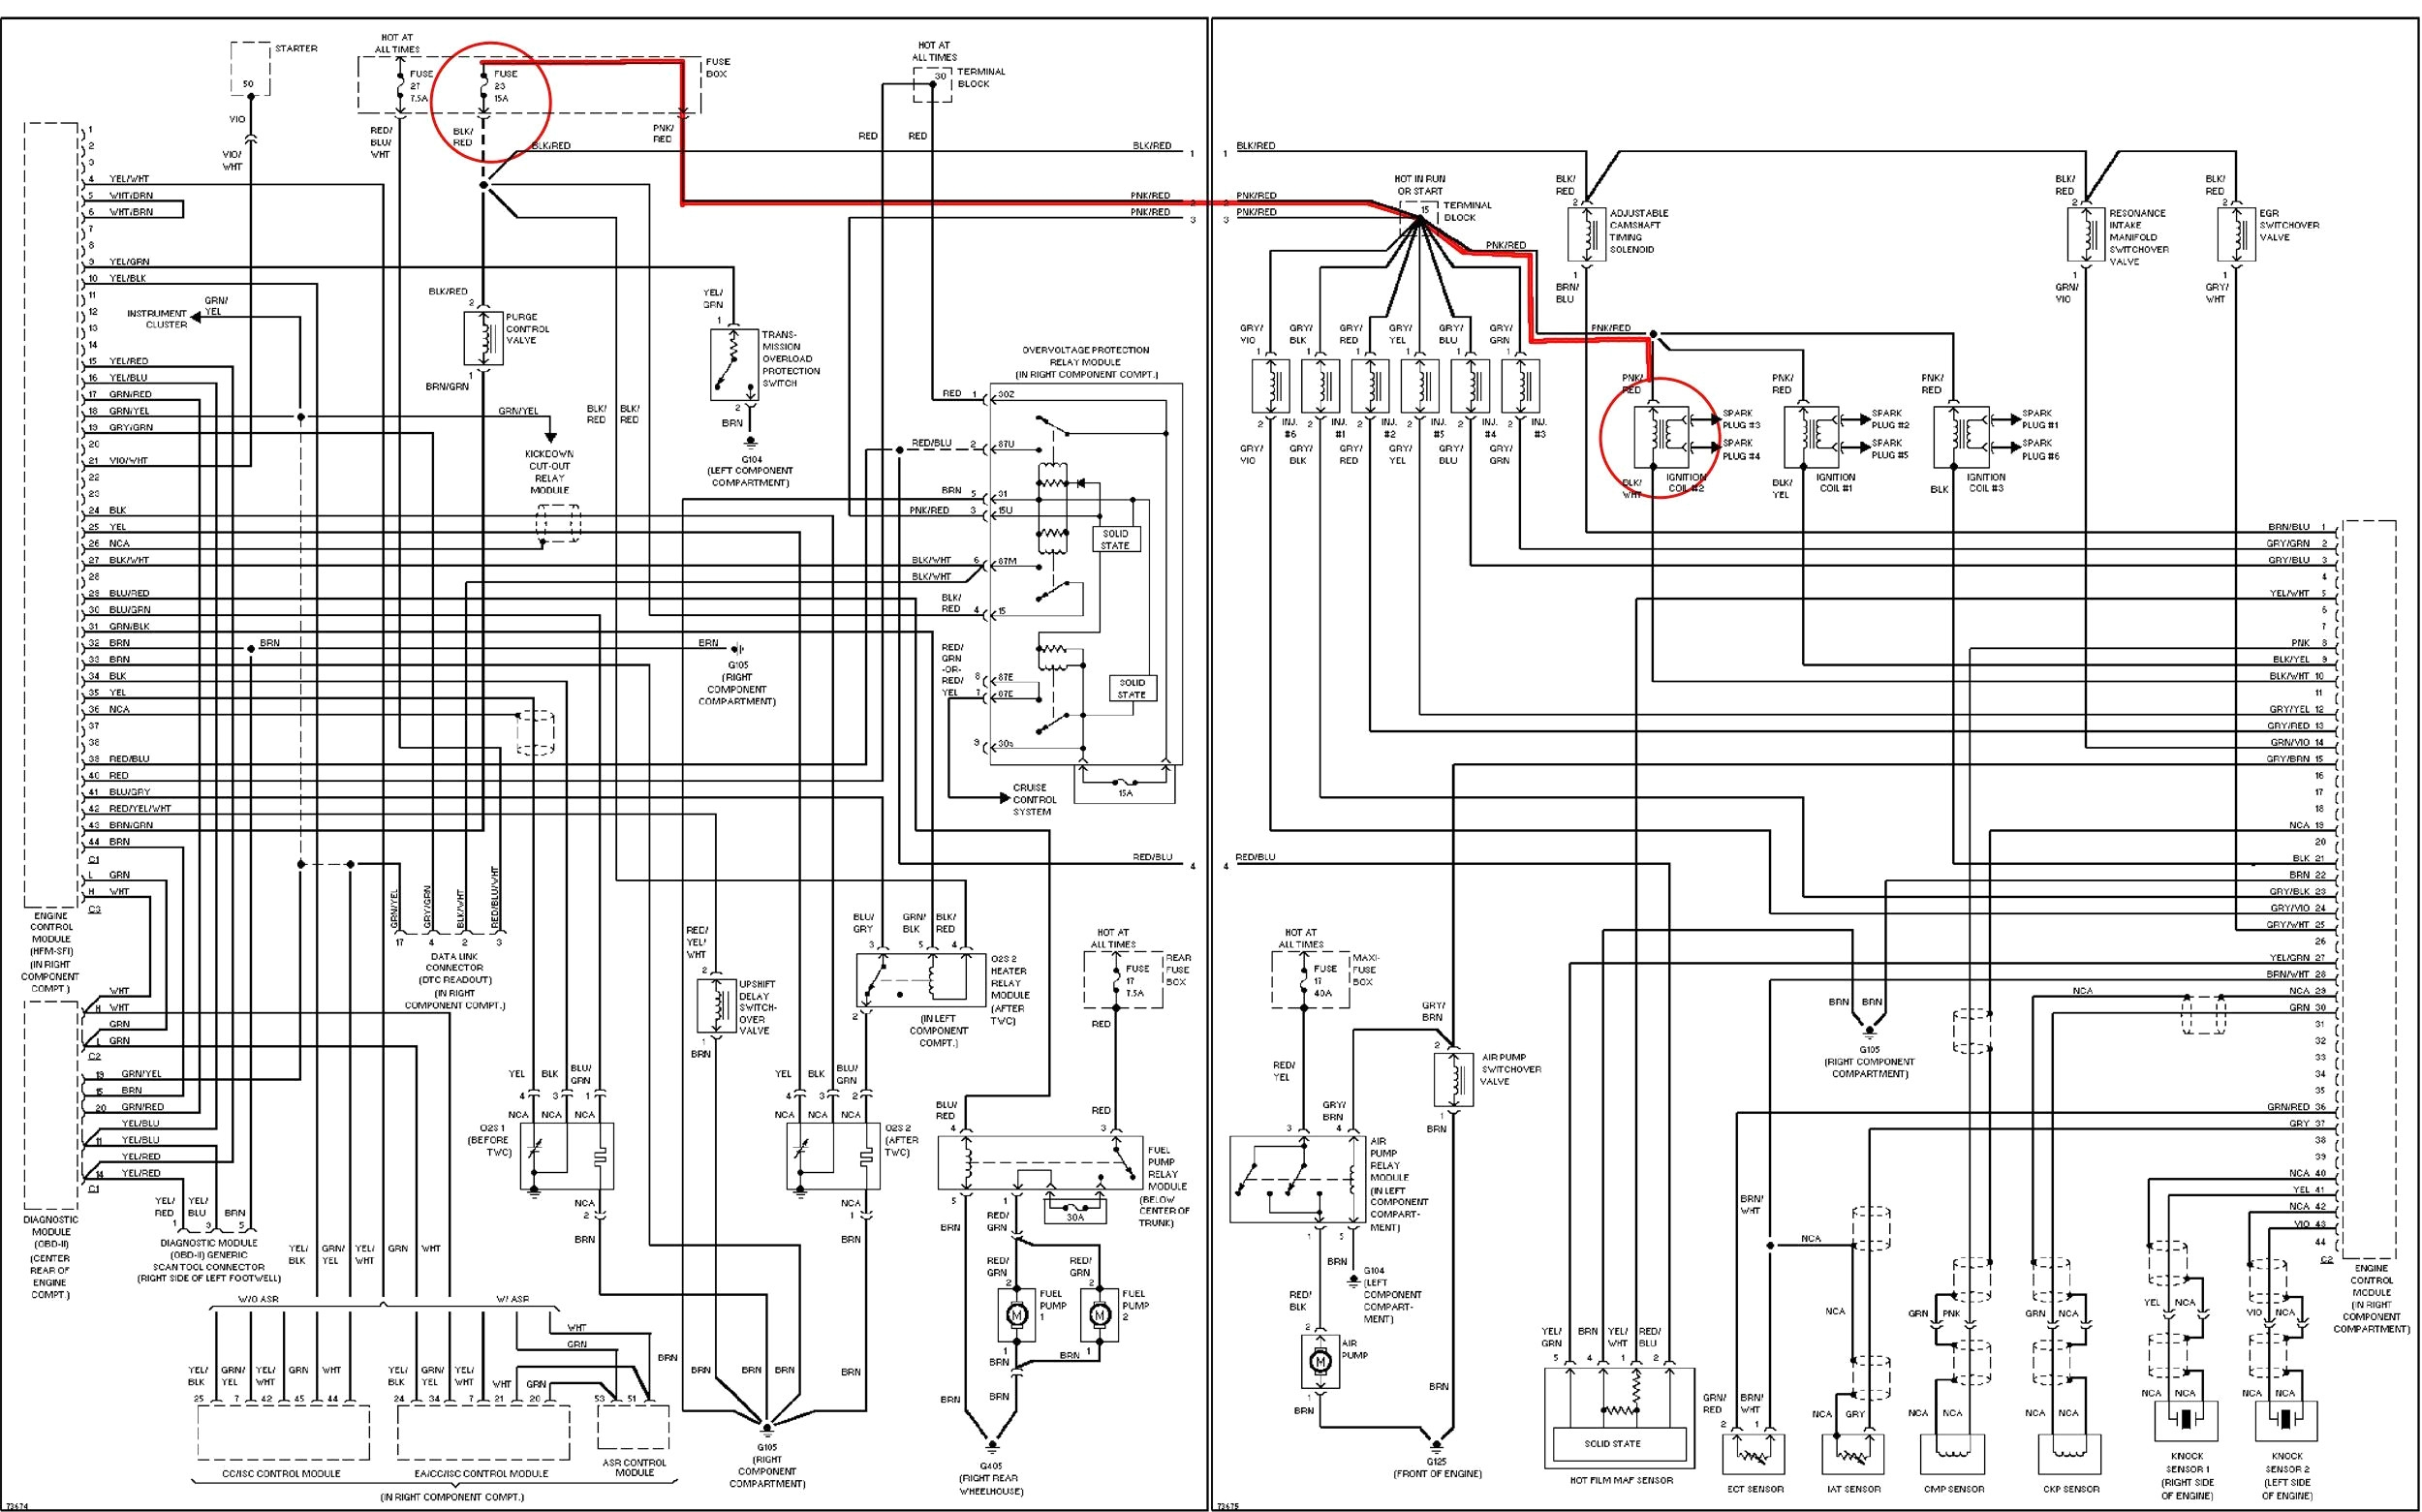 mercedes sprinter wiring diagram pdf Collection-Mercedes Sprinter Wiring Diagram Pdf Labeled 1991 Mercedes Benz 500sl Wiring Diagram 1993 Mercedes Benz 7-o